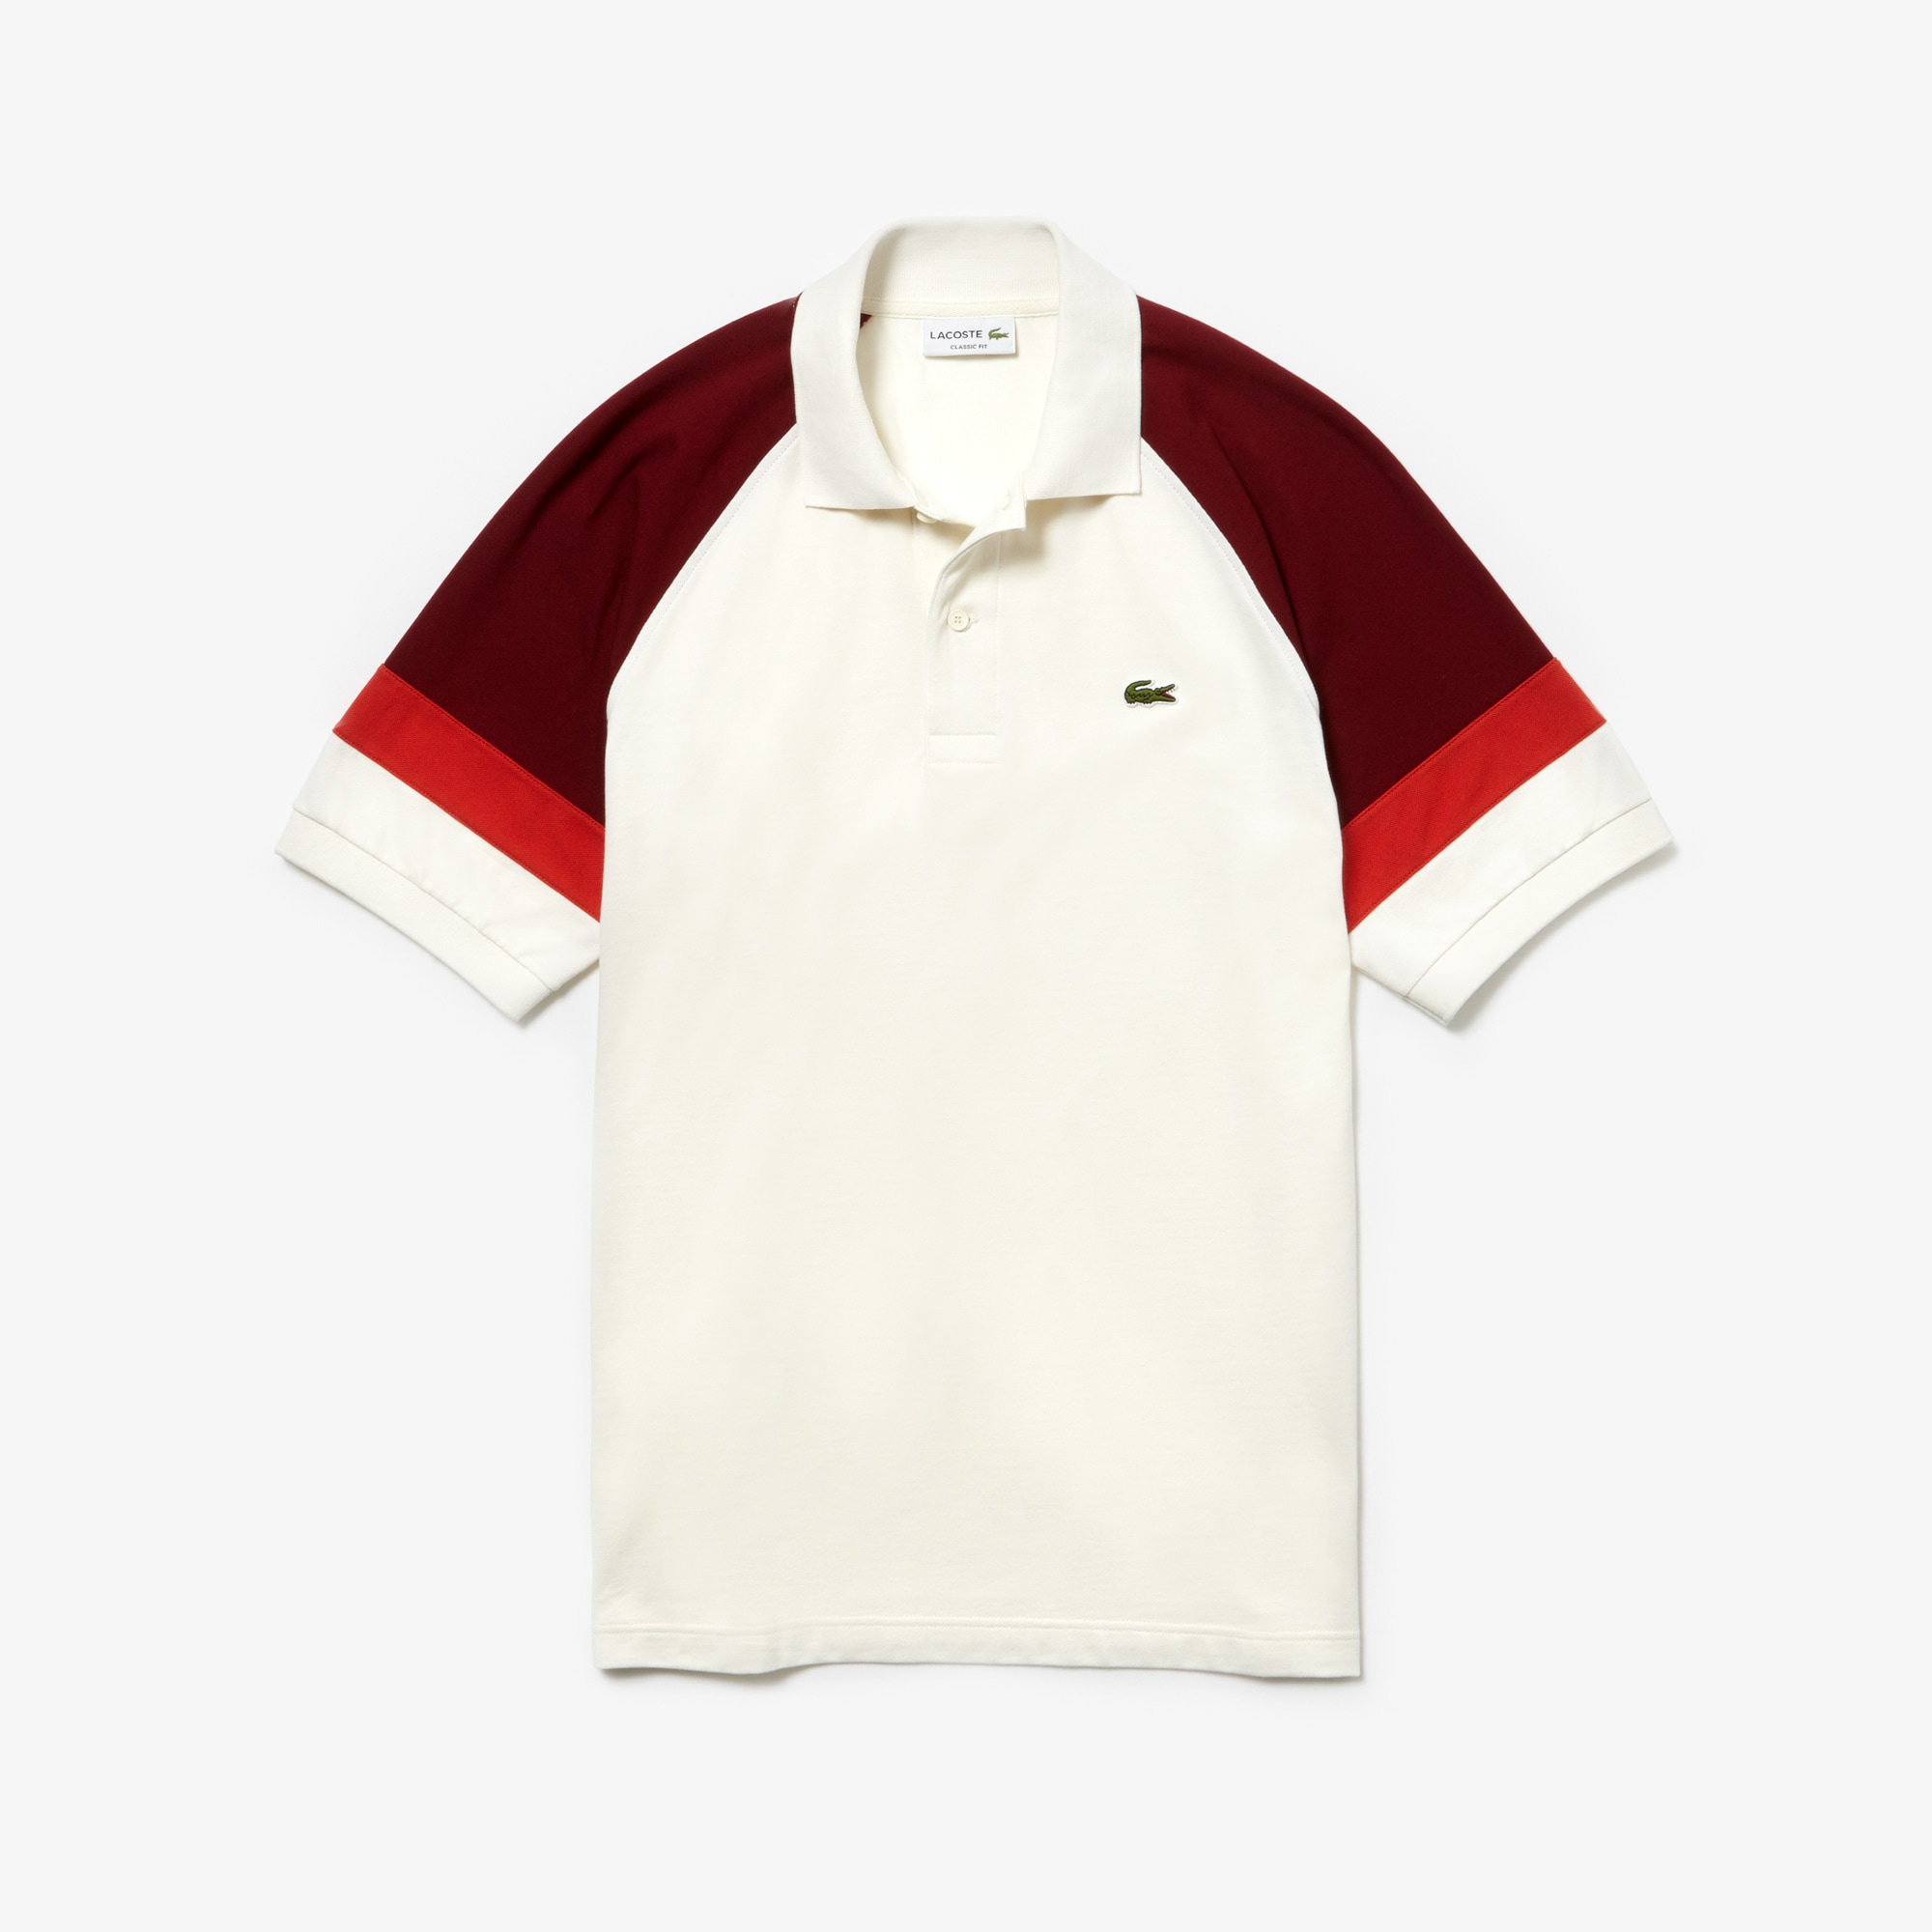 cfee1de3fe Men's L.12.12 Raglan Sleeved Piqué Polo in White / Bordeaux / Red